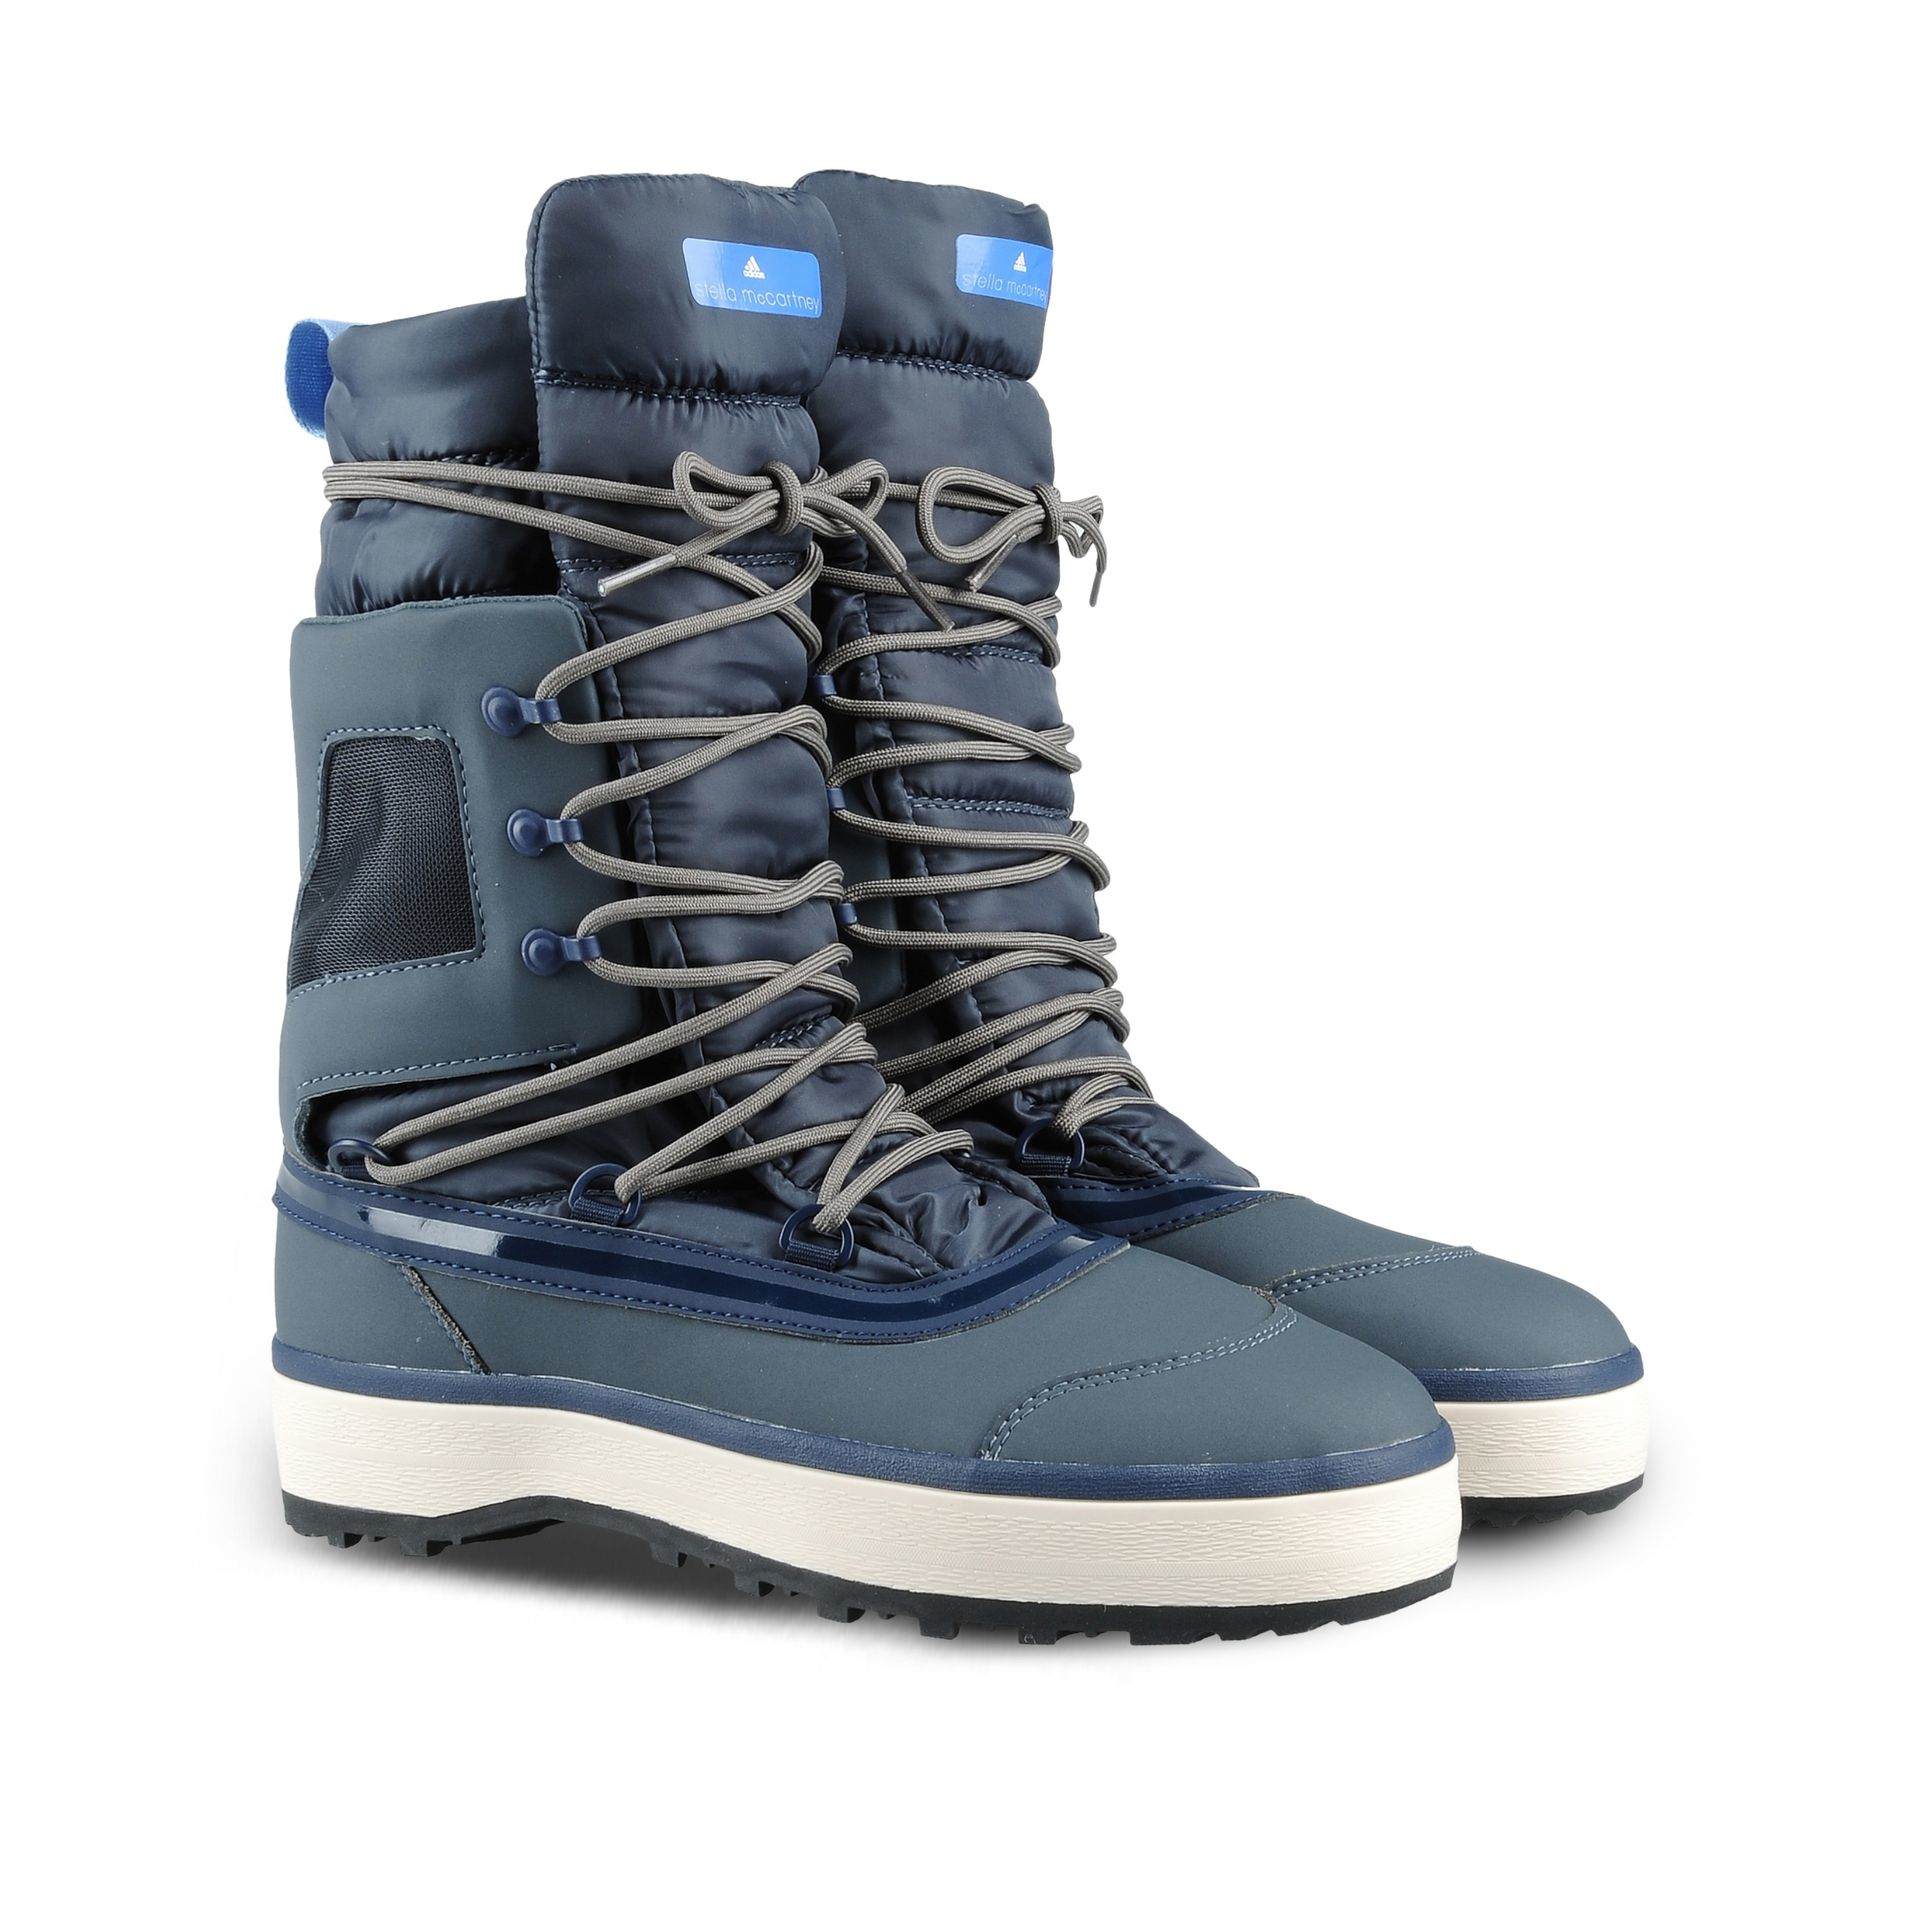 Adidas by stella mccartney Winter Boots in Blue  Lyst